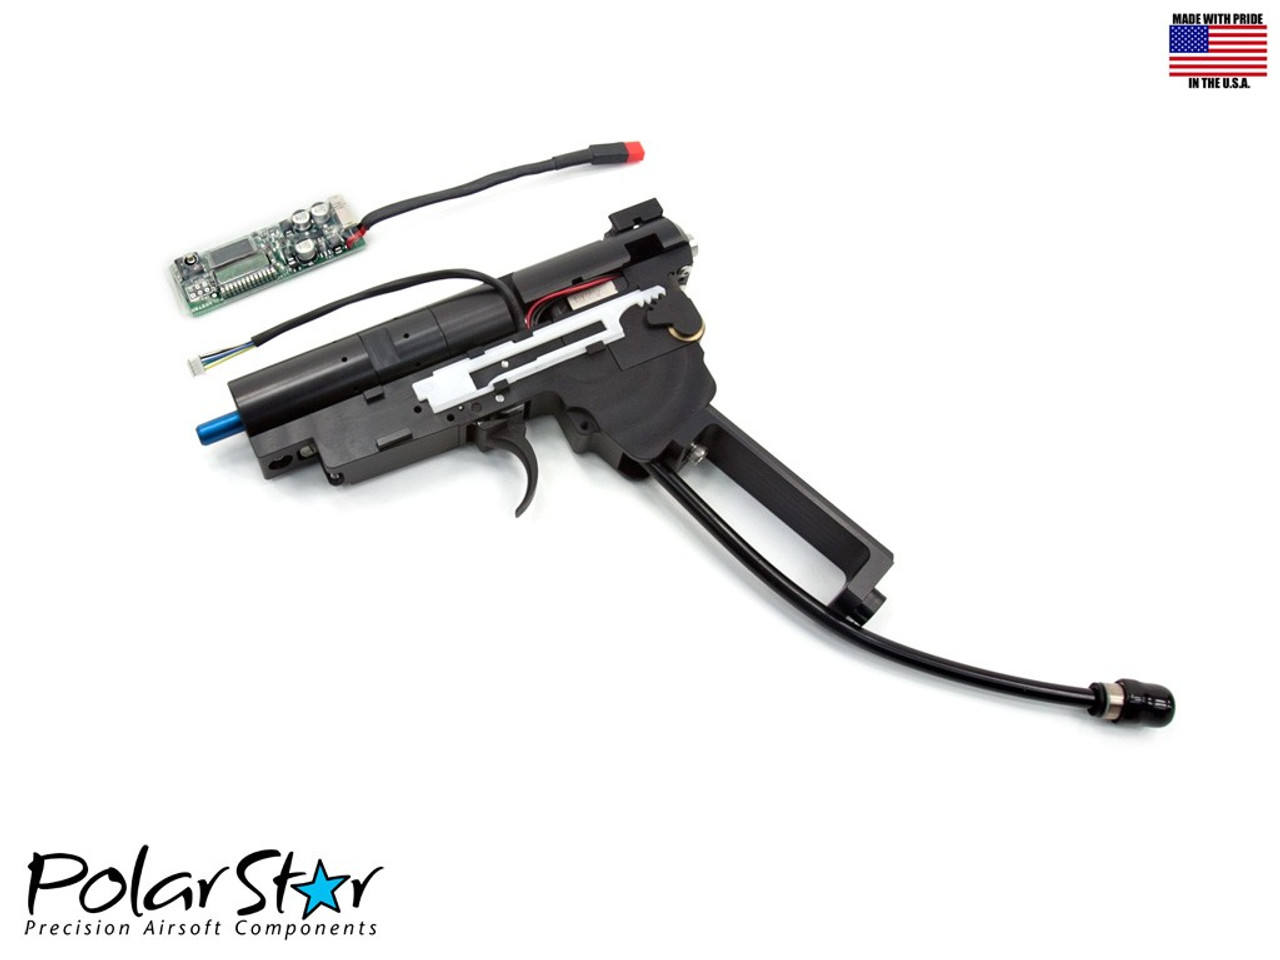 Polar Star Fusion Engine Kit  V3 (AK47/G36)